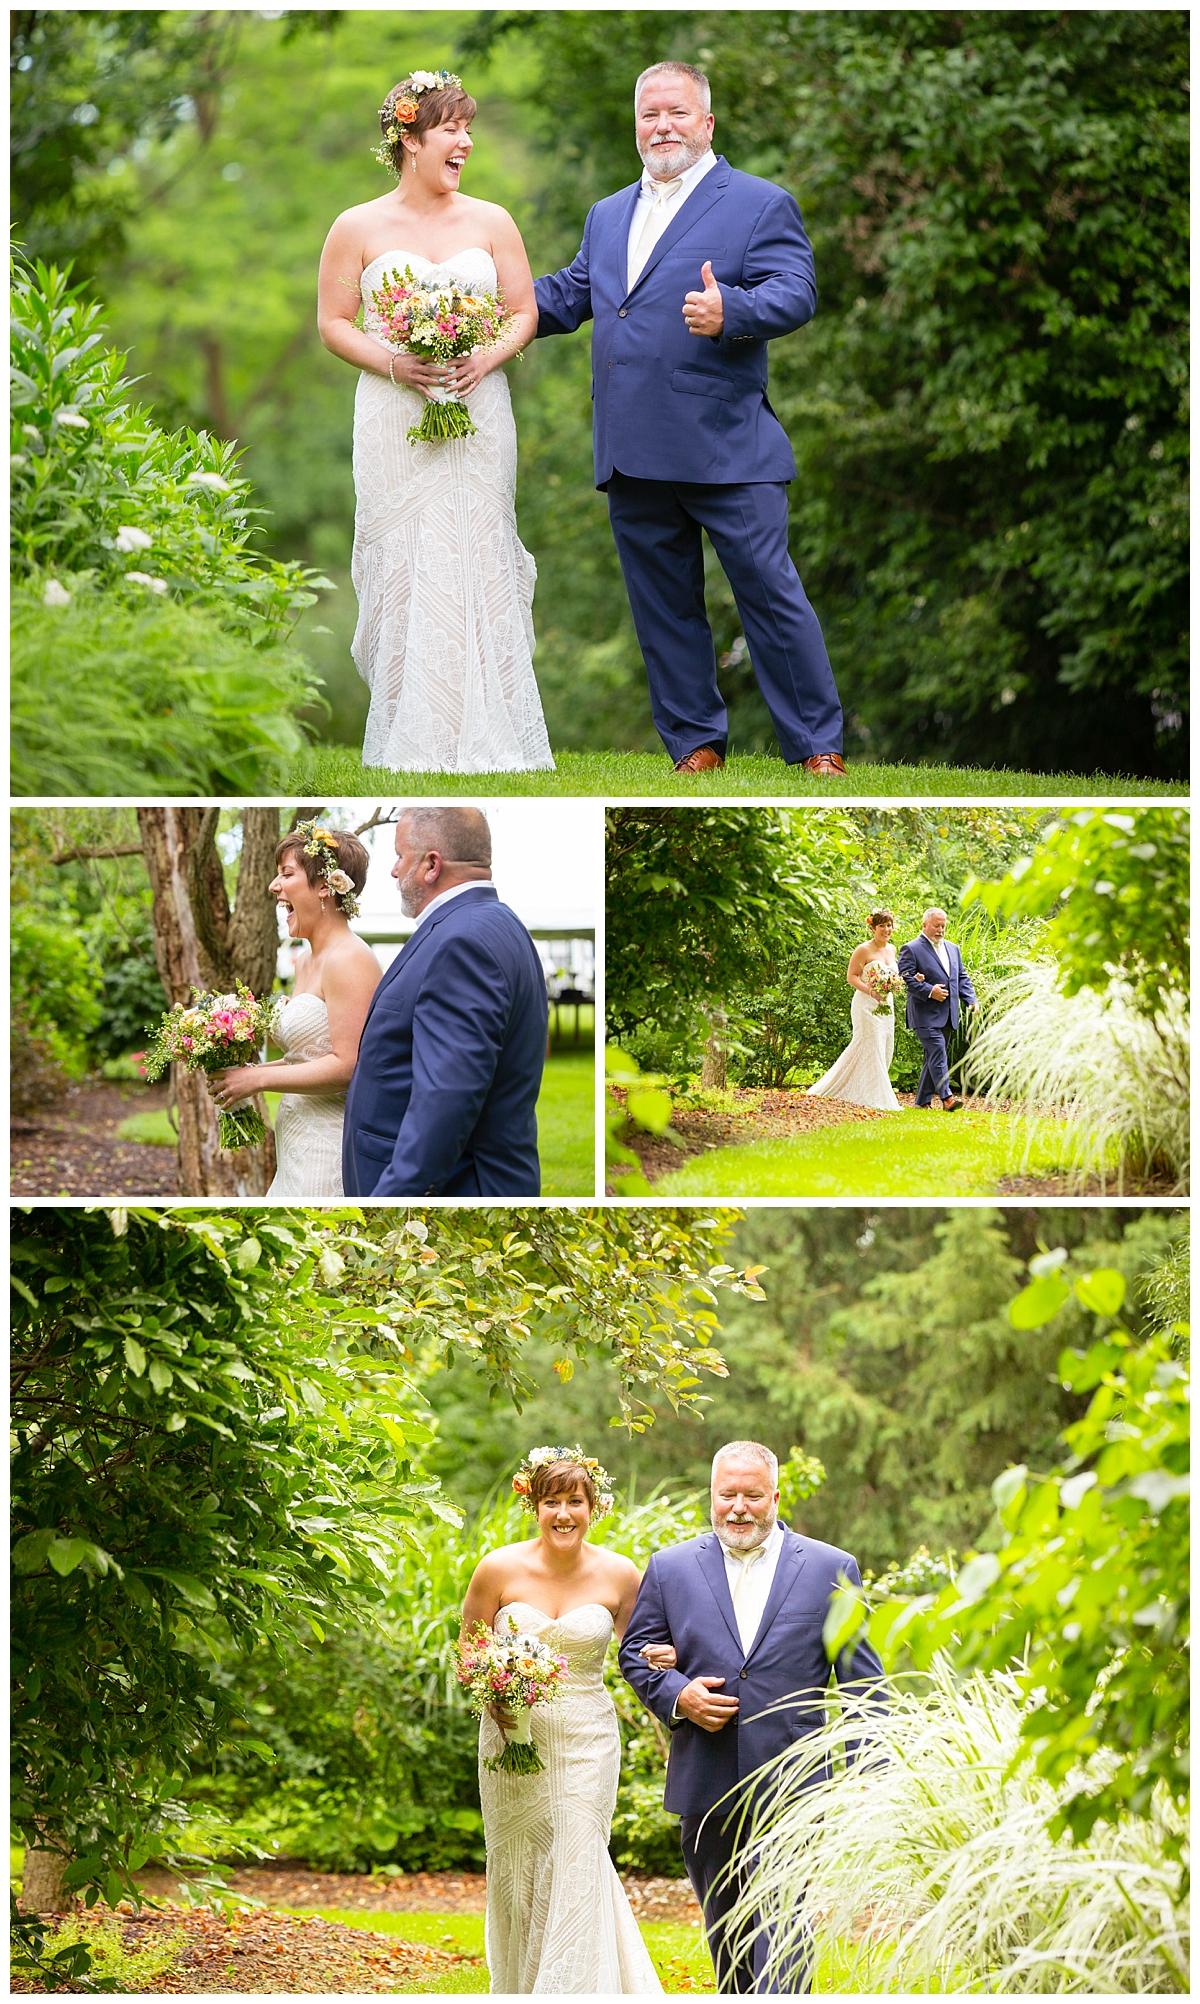 outdoor wedding, natural wedding photography, photographer of love and joy